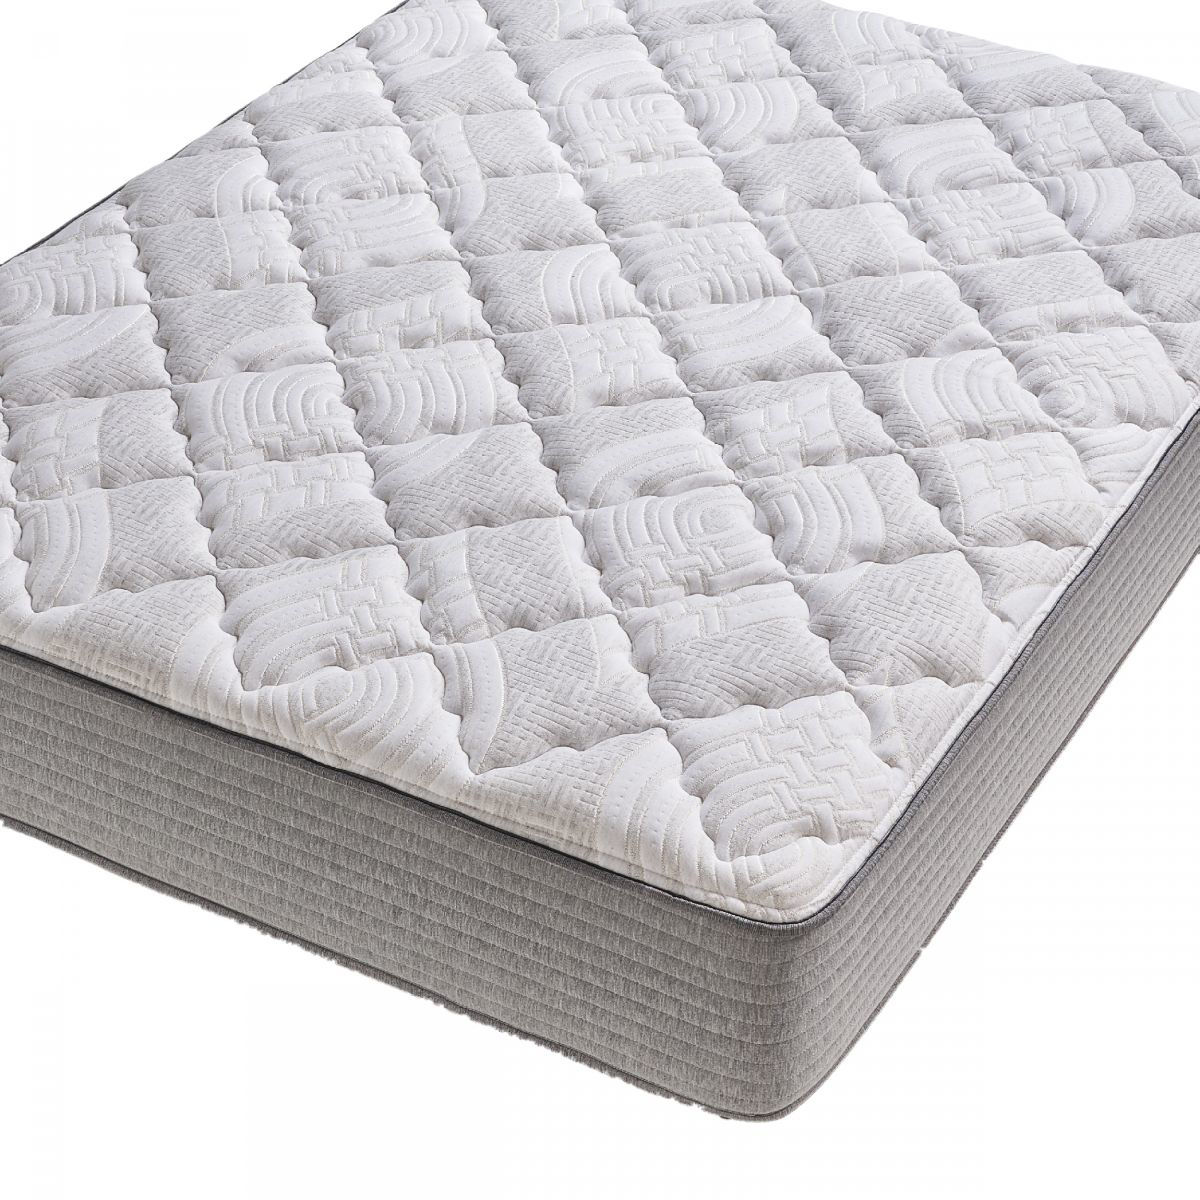 Picture of DELILAH LUXURY FIRM FULL MATTRESS